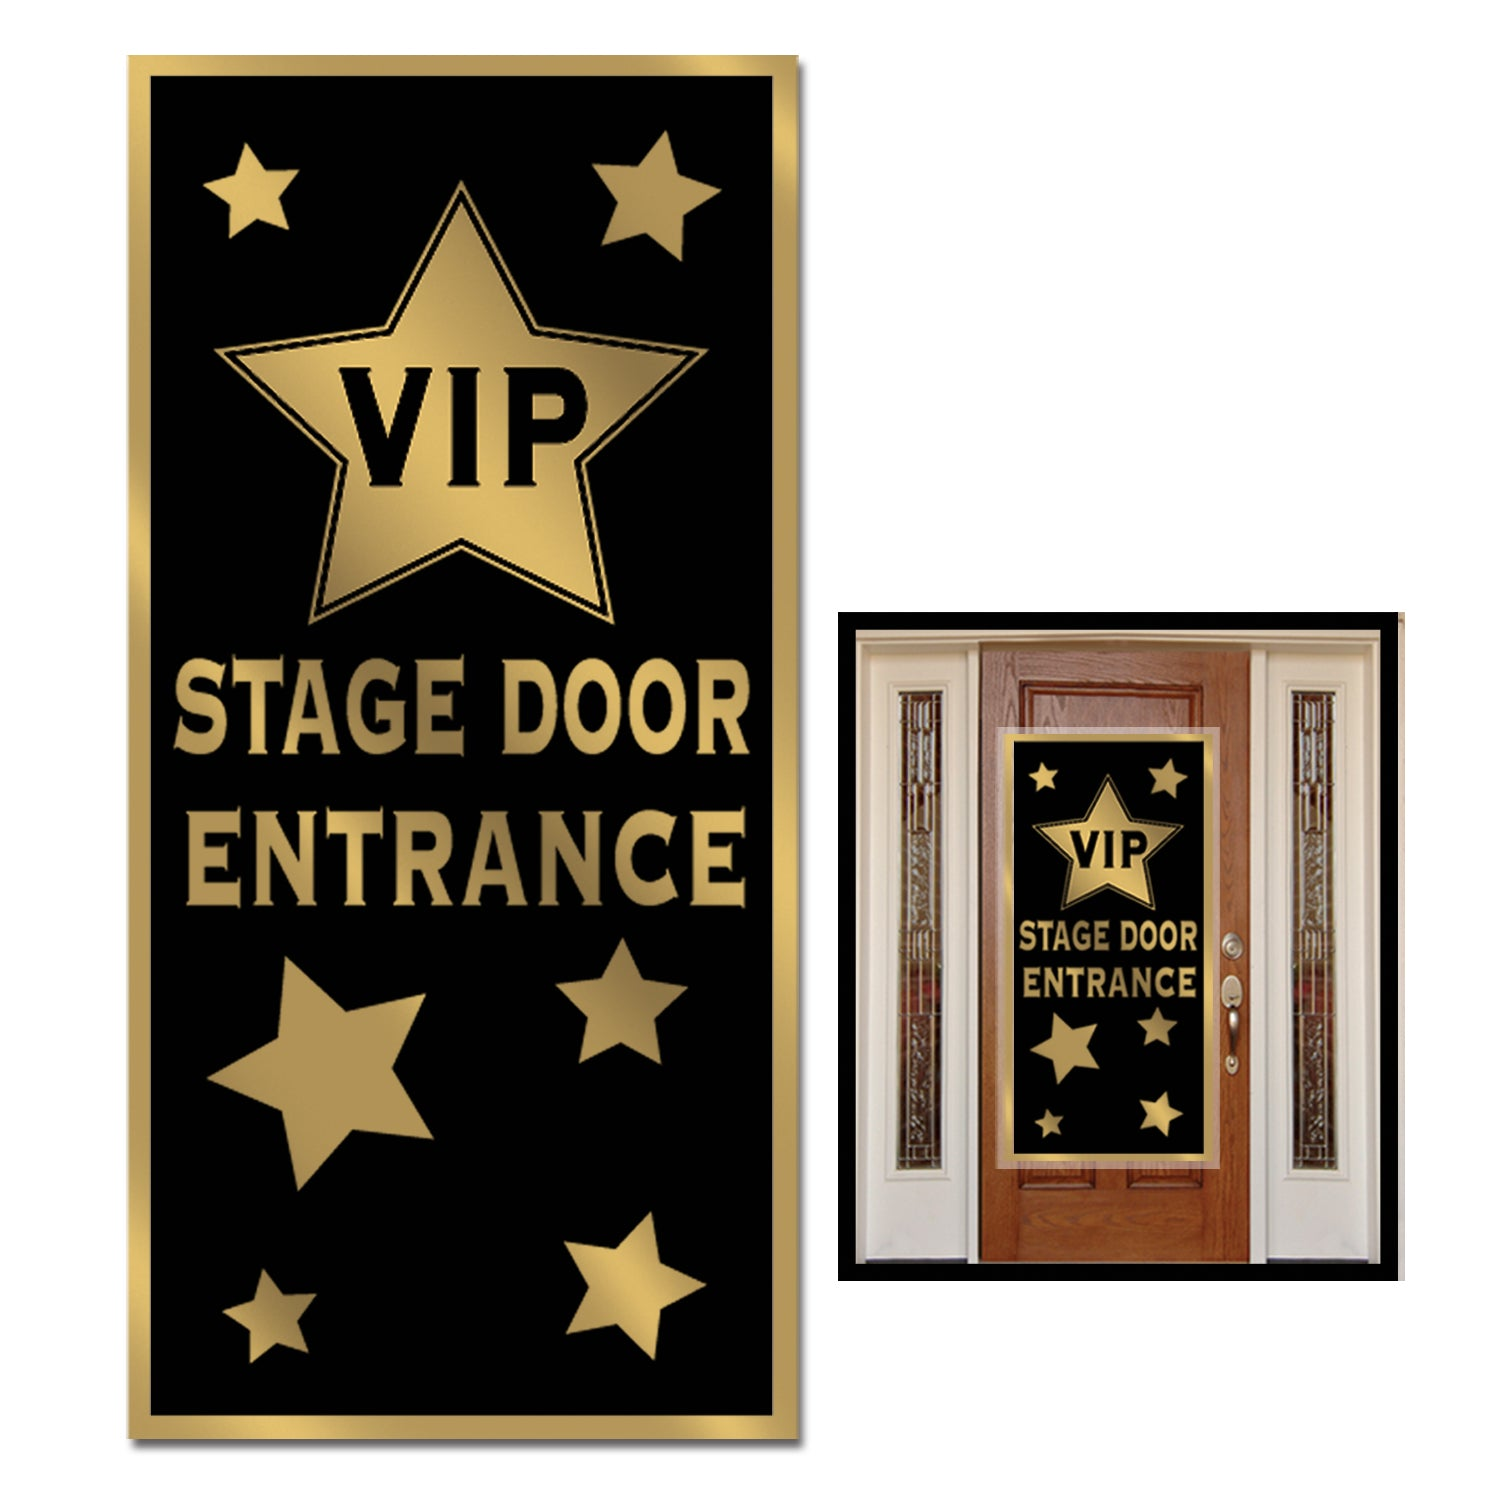 VIP Stage Door Entrance Plastic Door Cover 152cm x 76cm - Party Savers